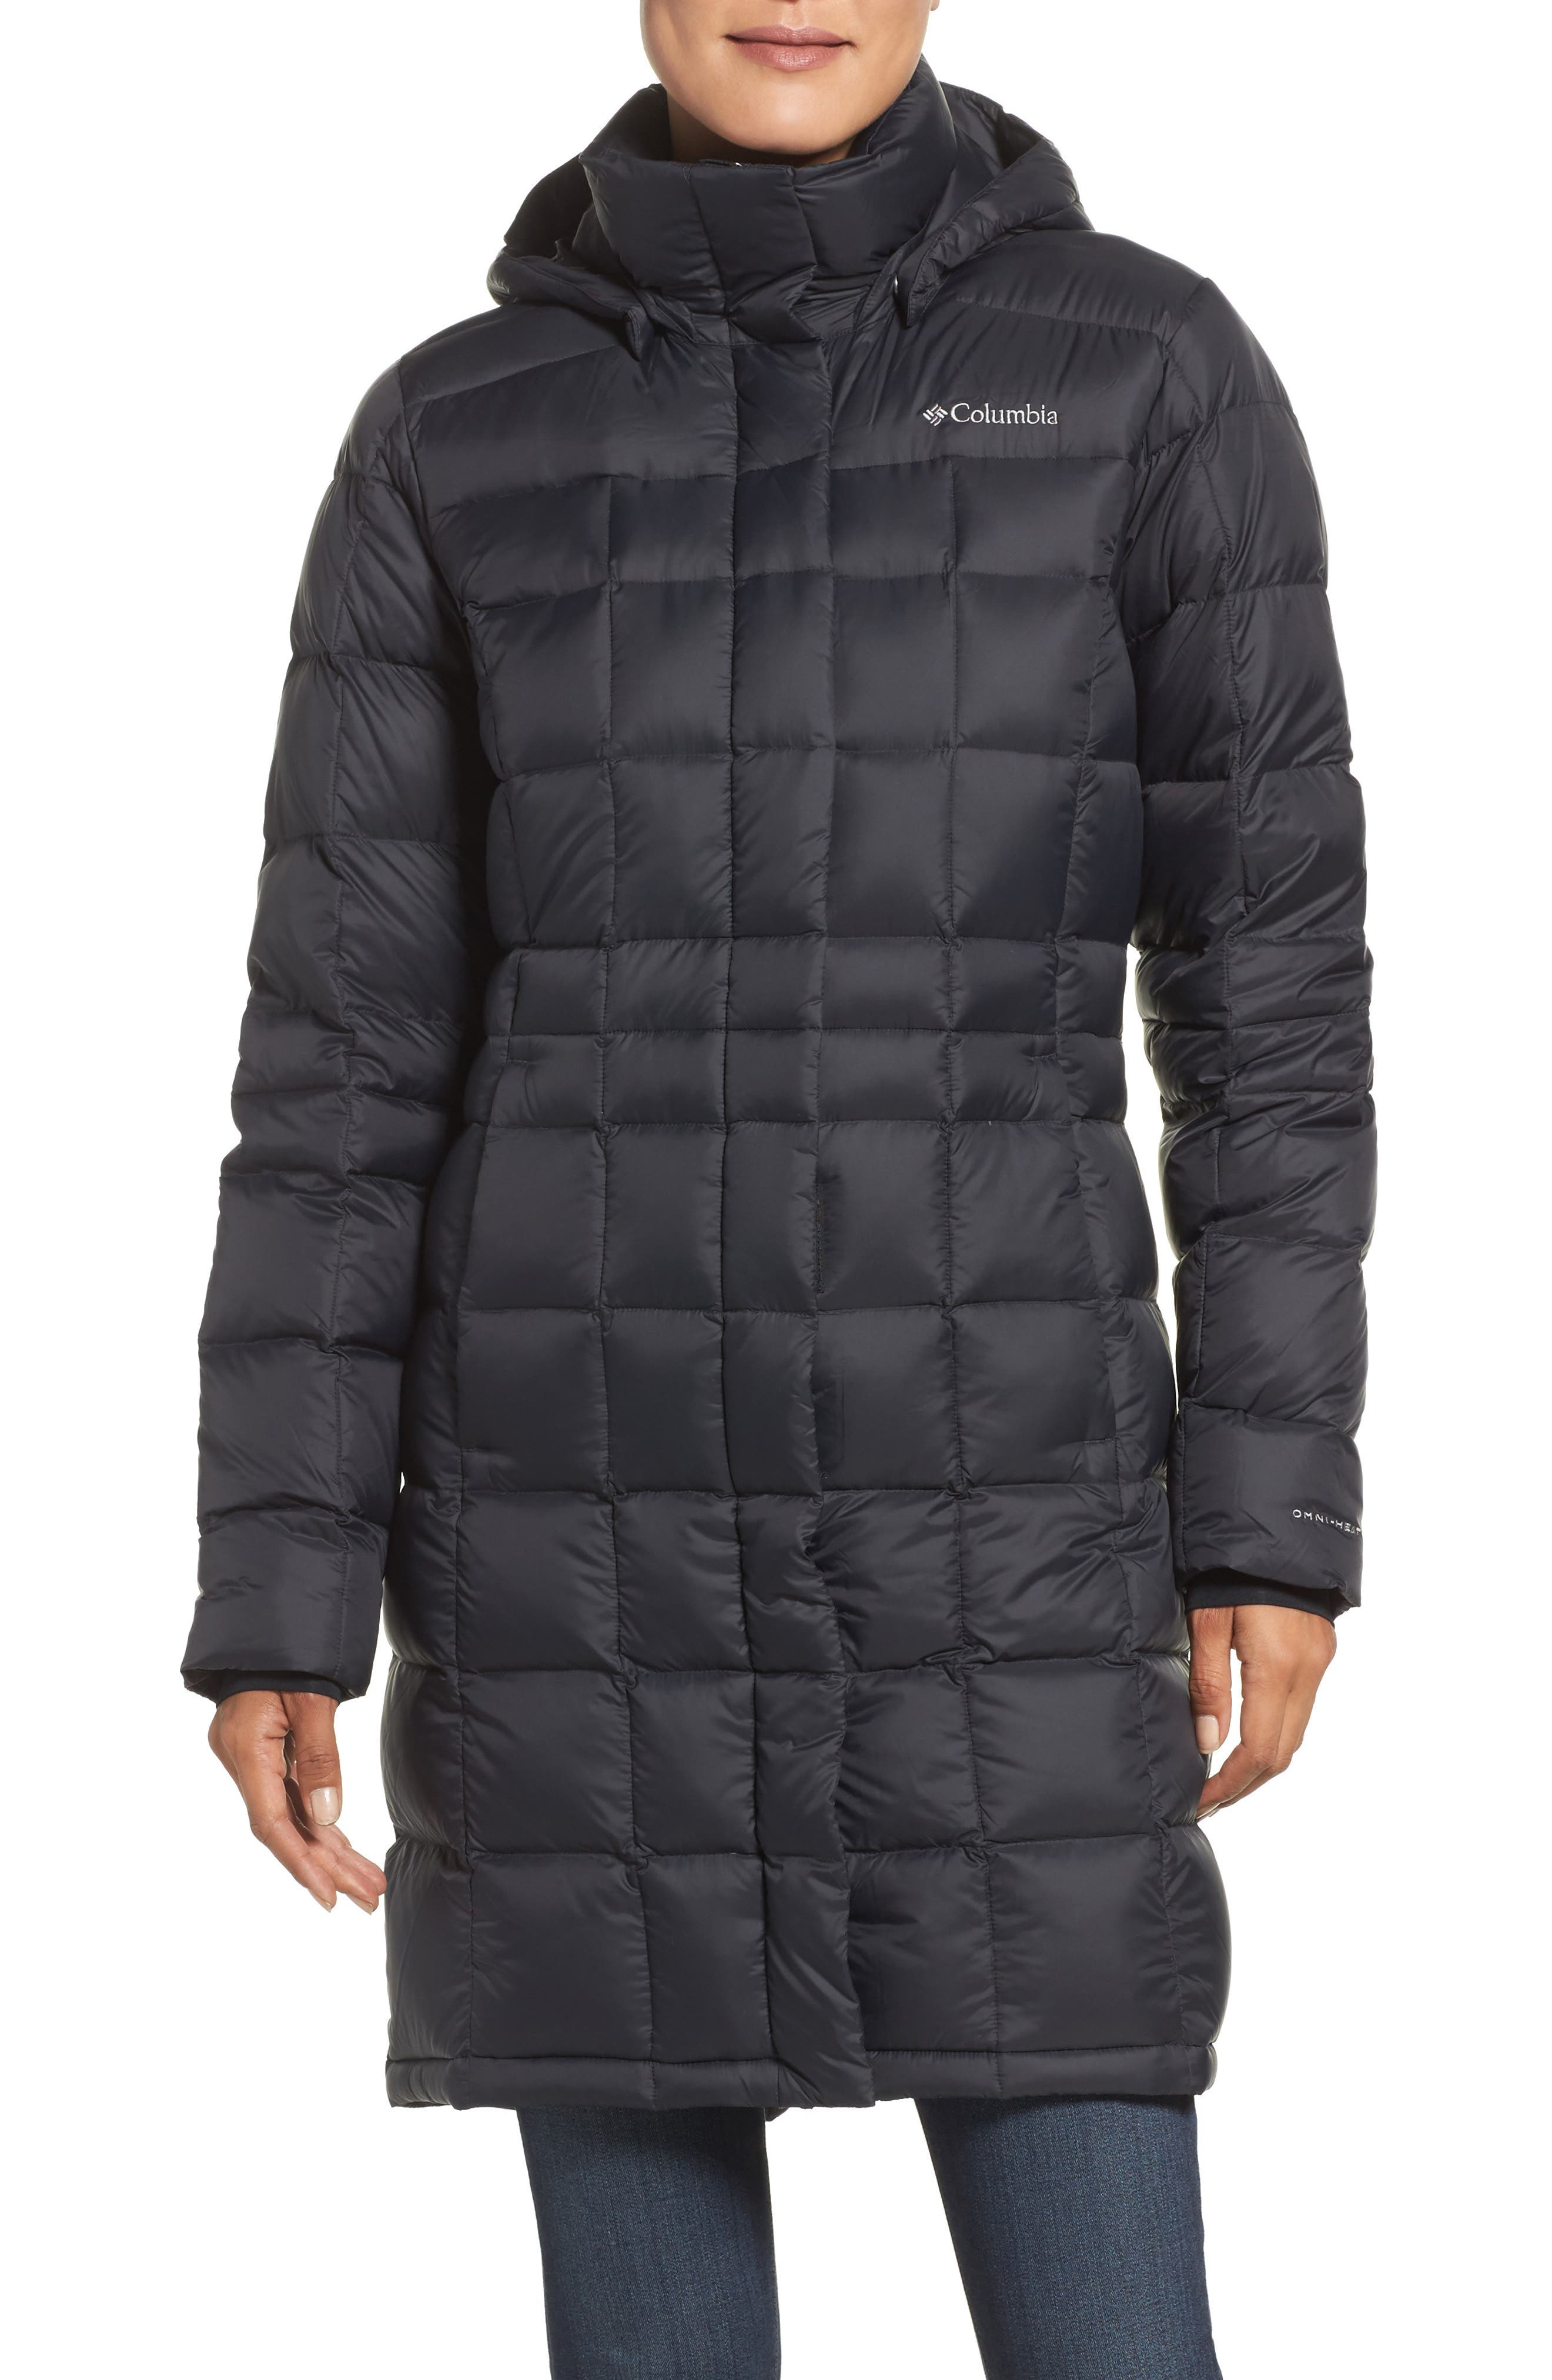 Columbia Hexbreaker Water Resistant Down Jacket